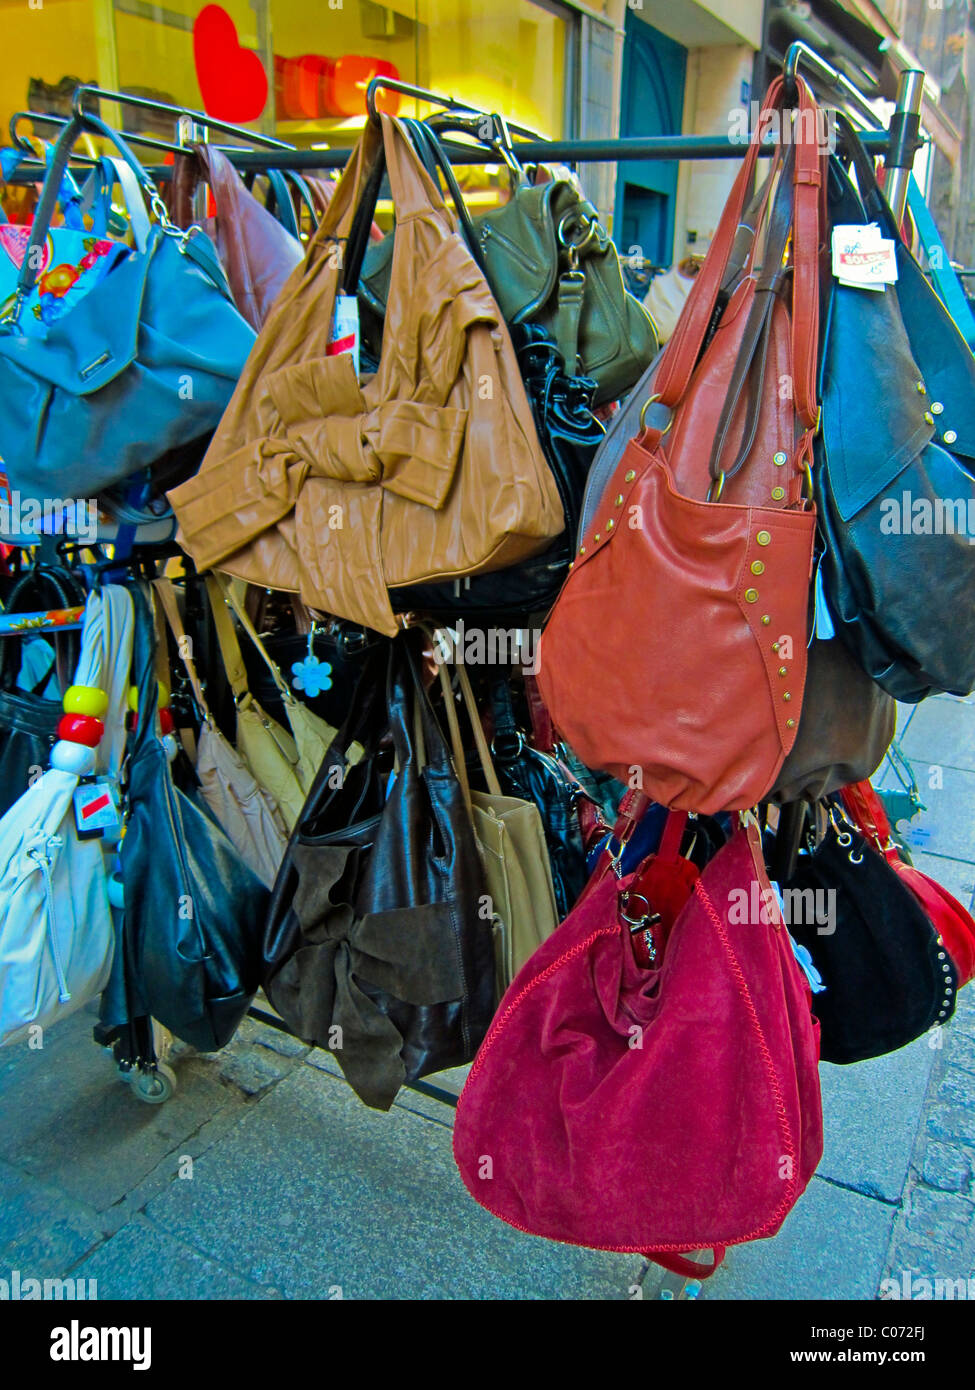 Paris, France, French Vintage Clothing Store, Displays, 'Rain-bow' 'Hand Bags', Les Halles District - Stock Image